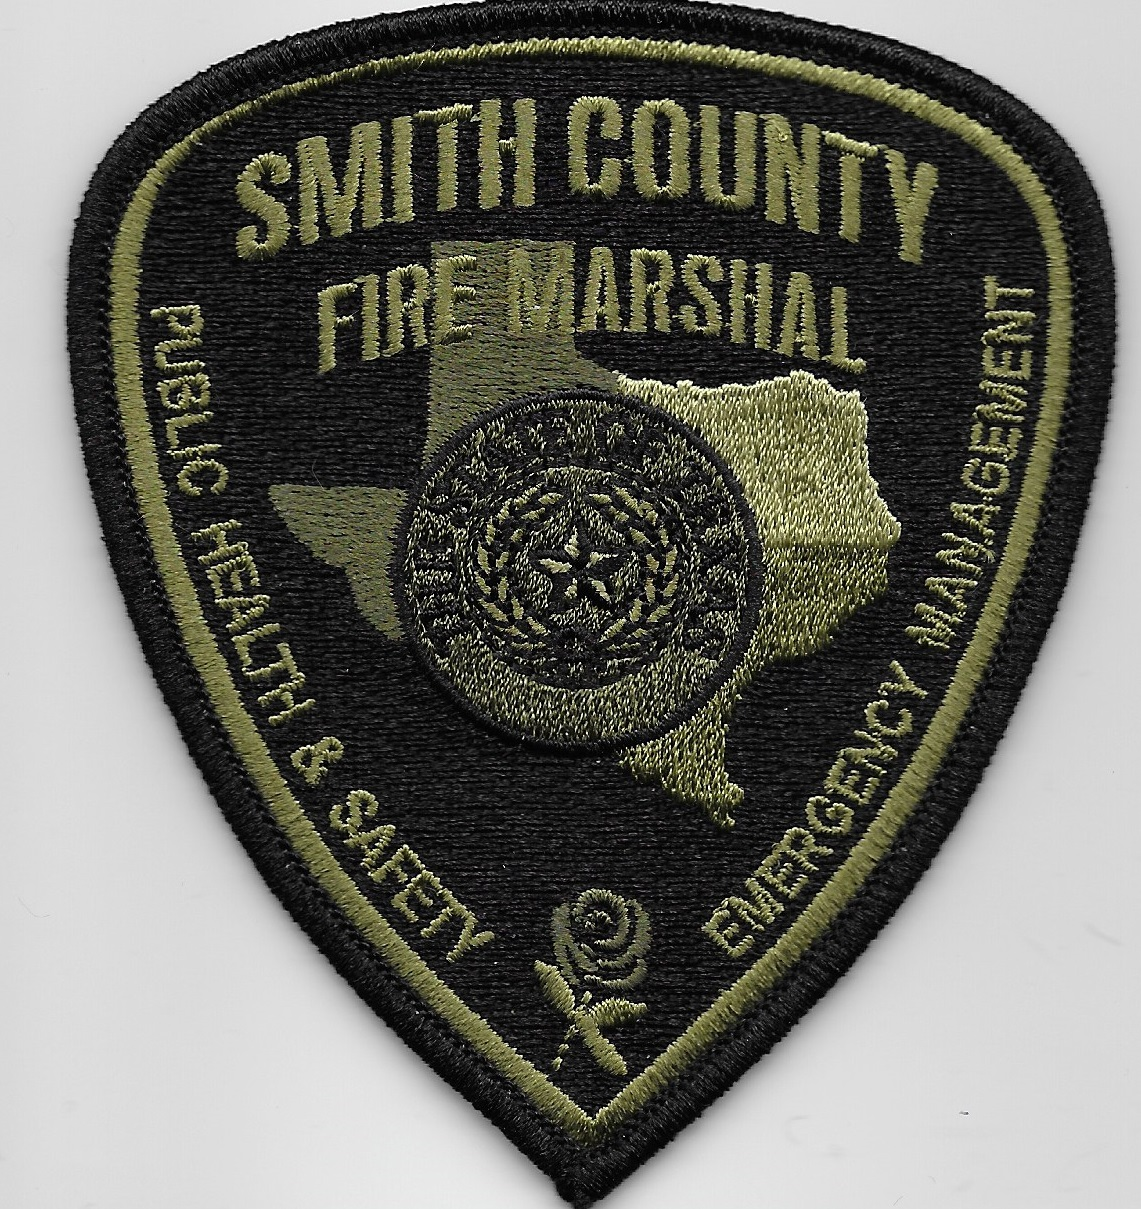 Smith County Fire Marshal